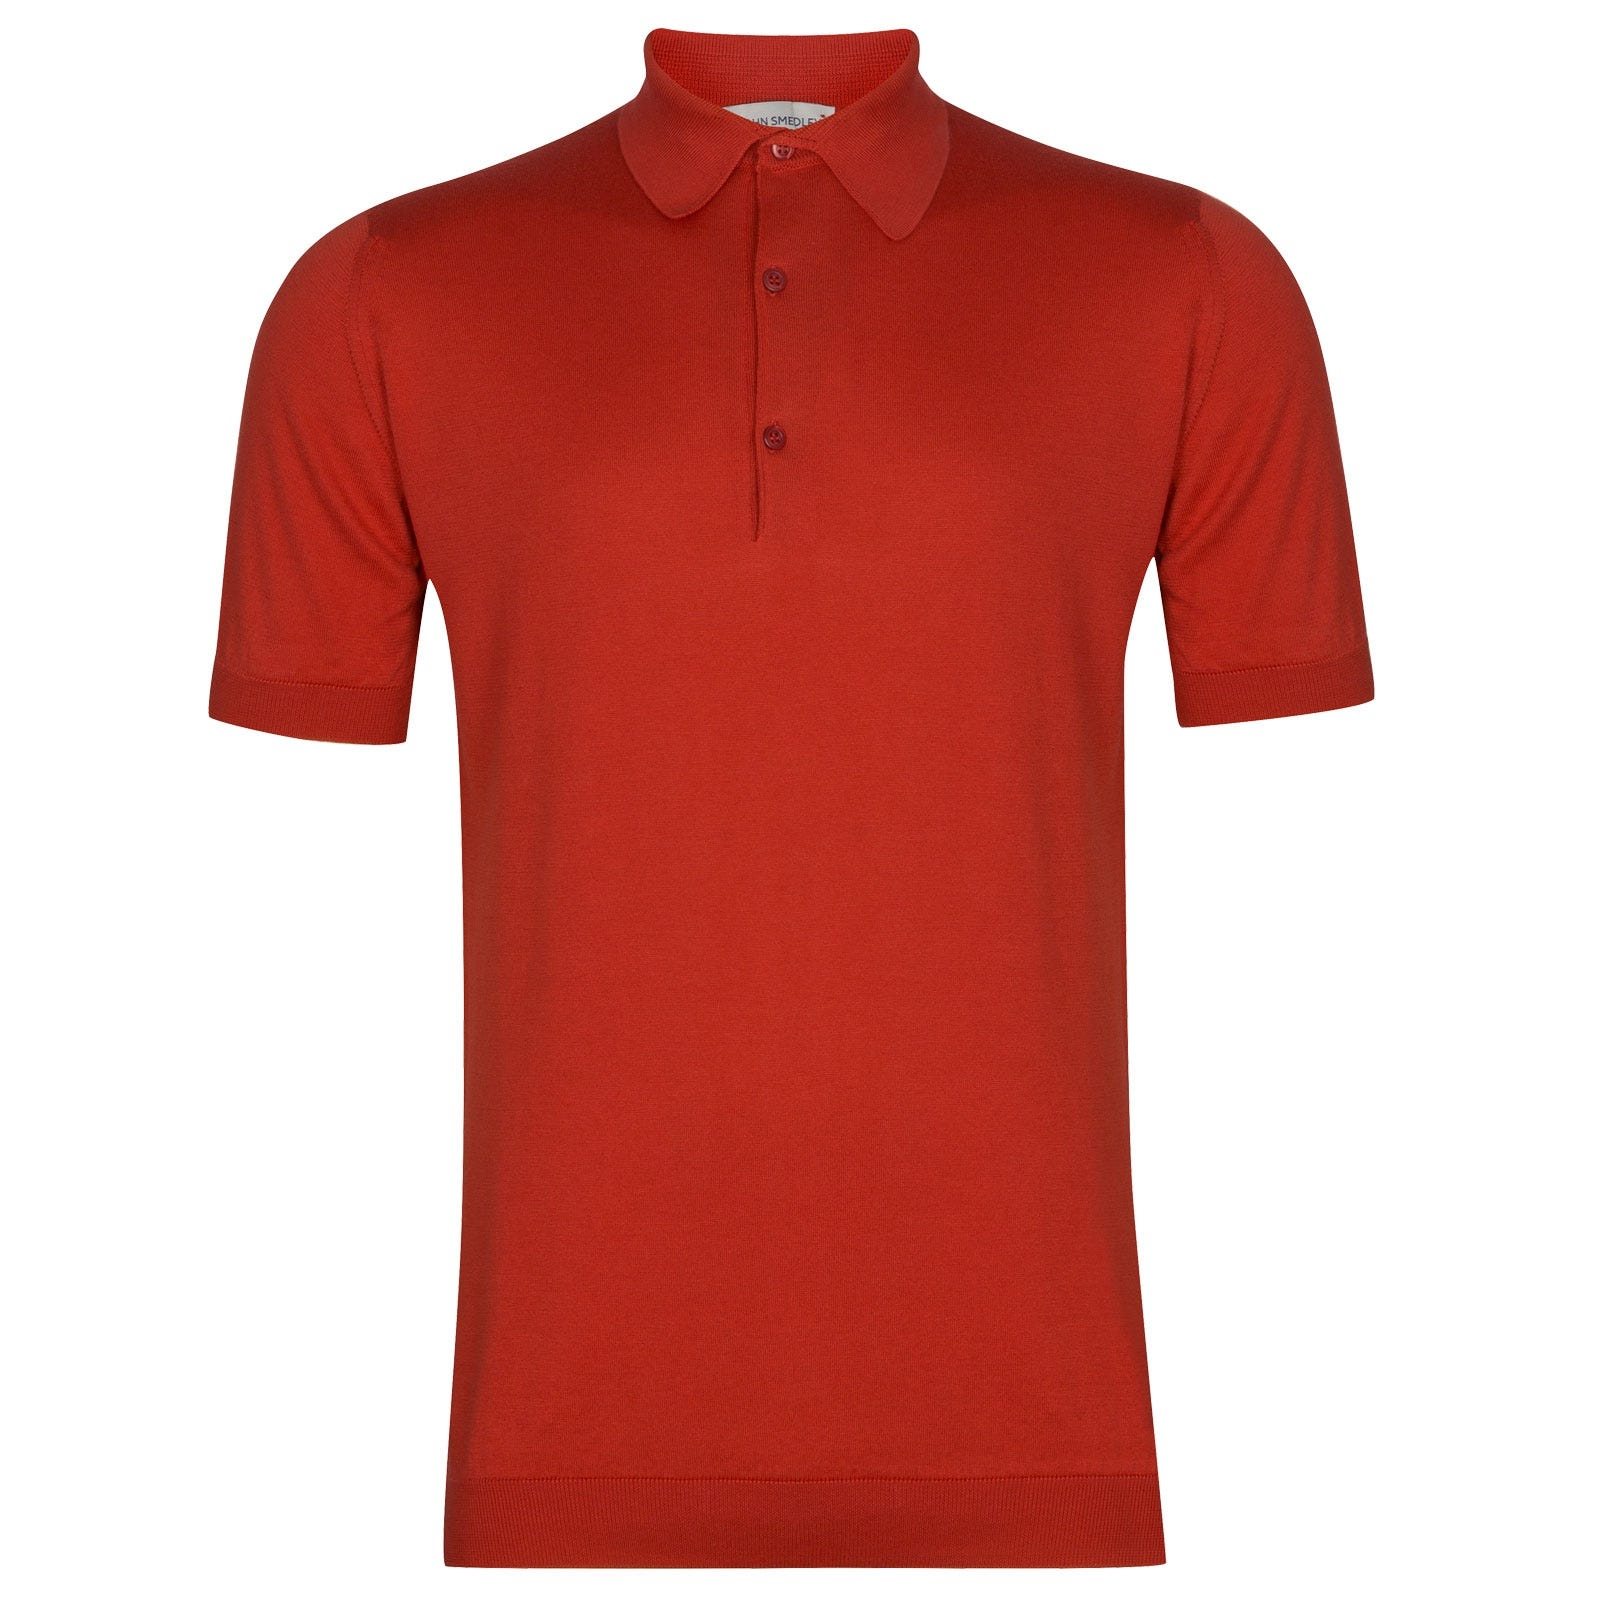 John Smedley Adrian in Red Admiral Shirt-SML